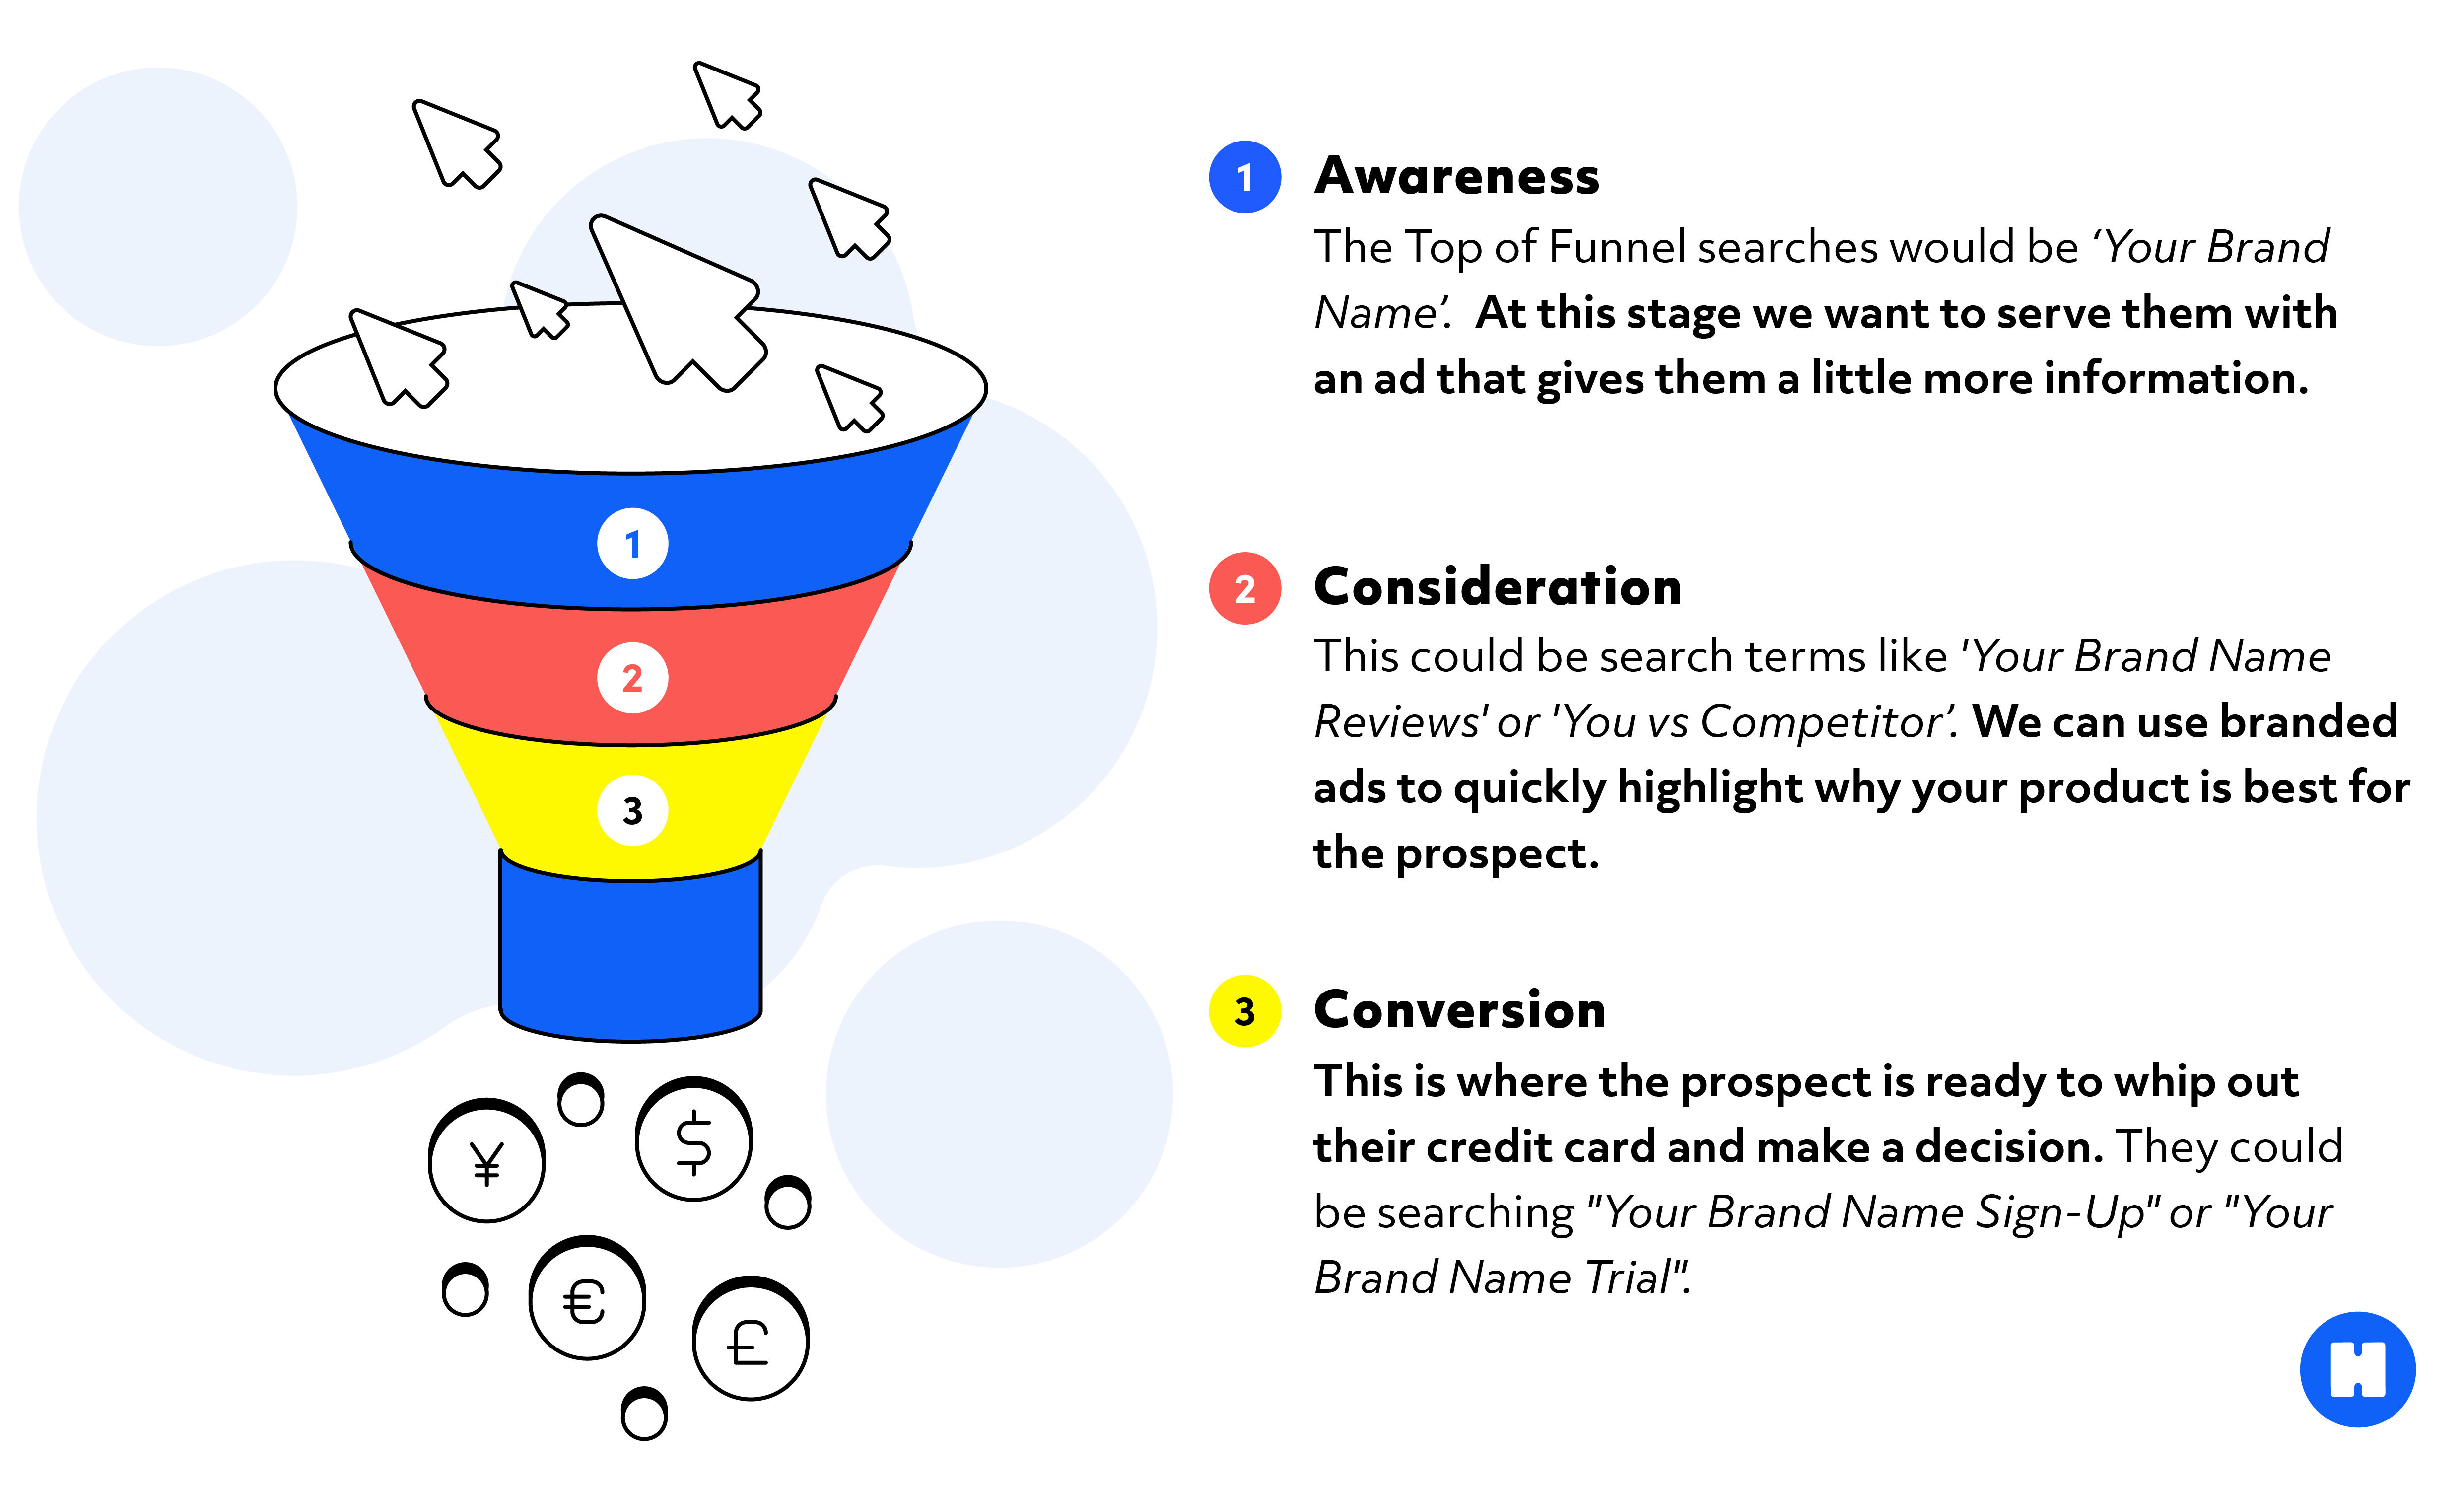 This shows the stages of the marketing funnel for branded campaigns in PPC. The first stage is awareness, the second stage is consideration and the third stage is conversion.